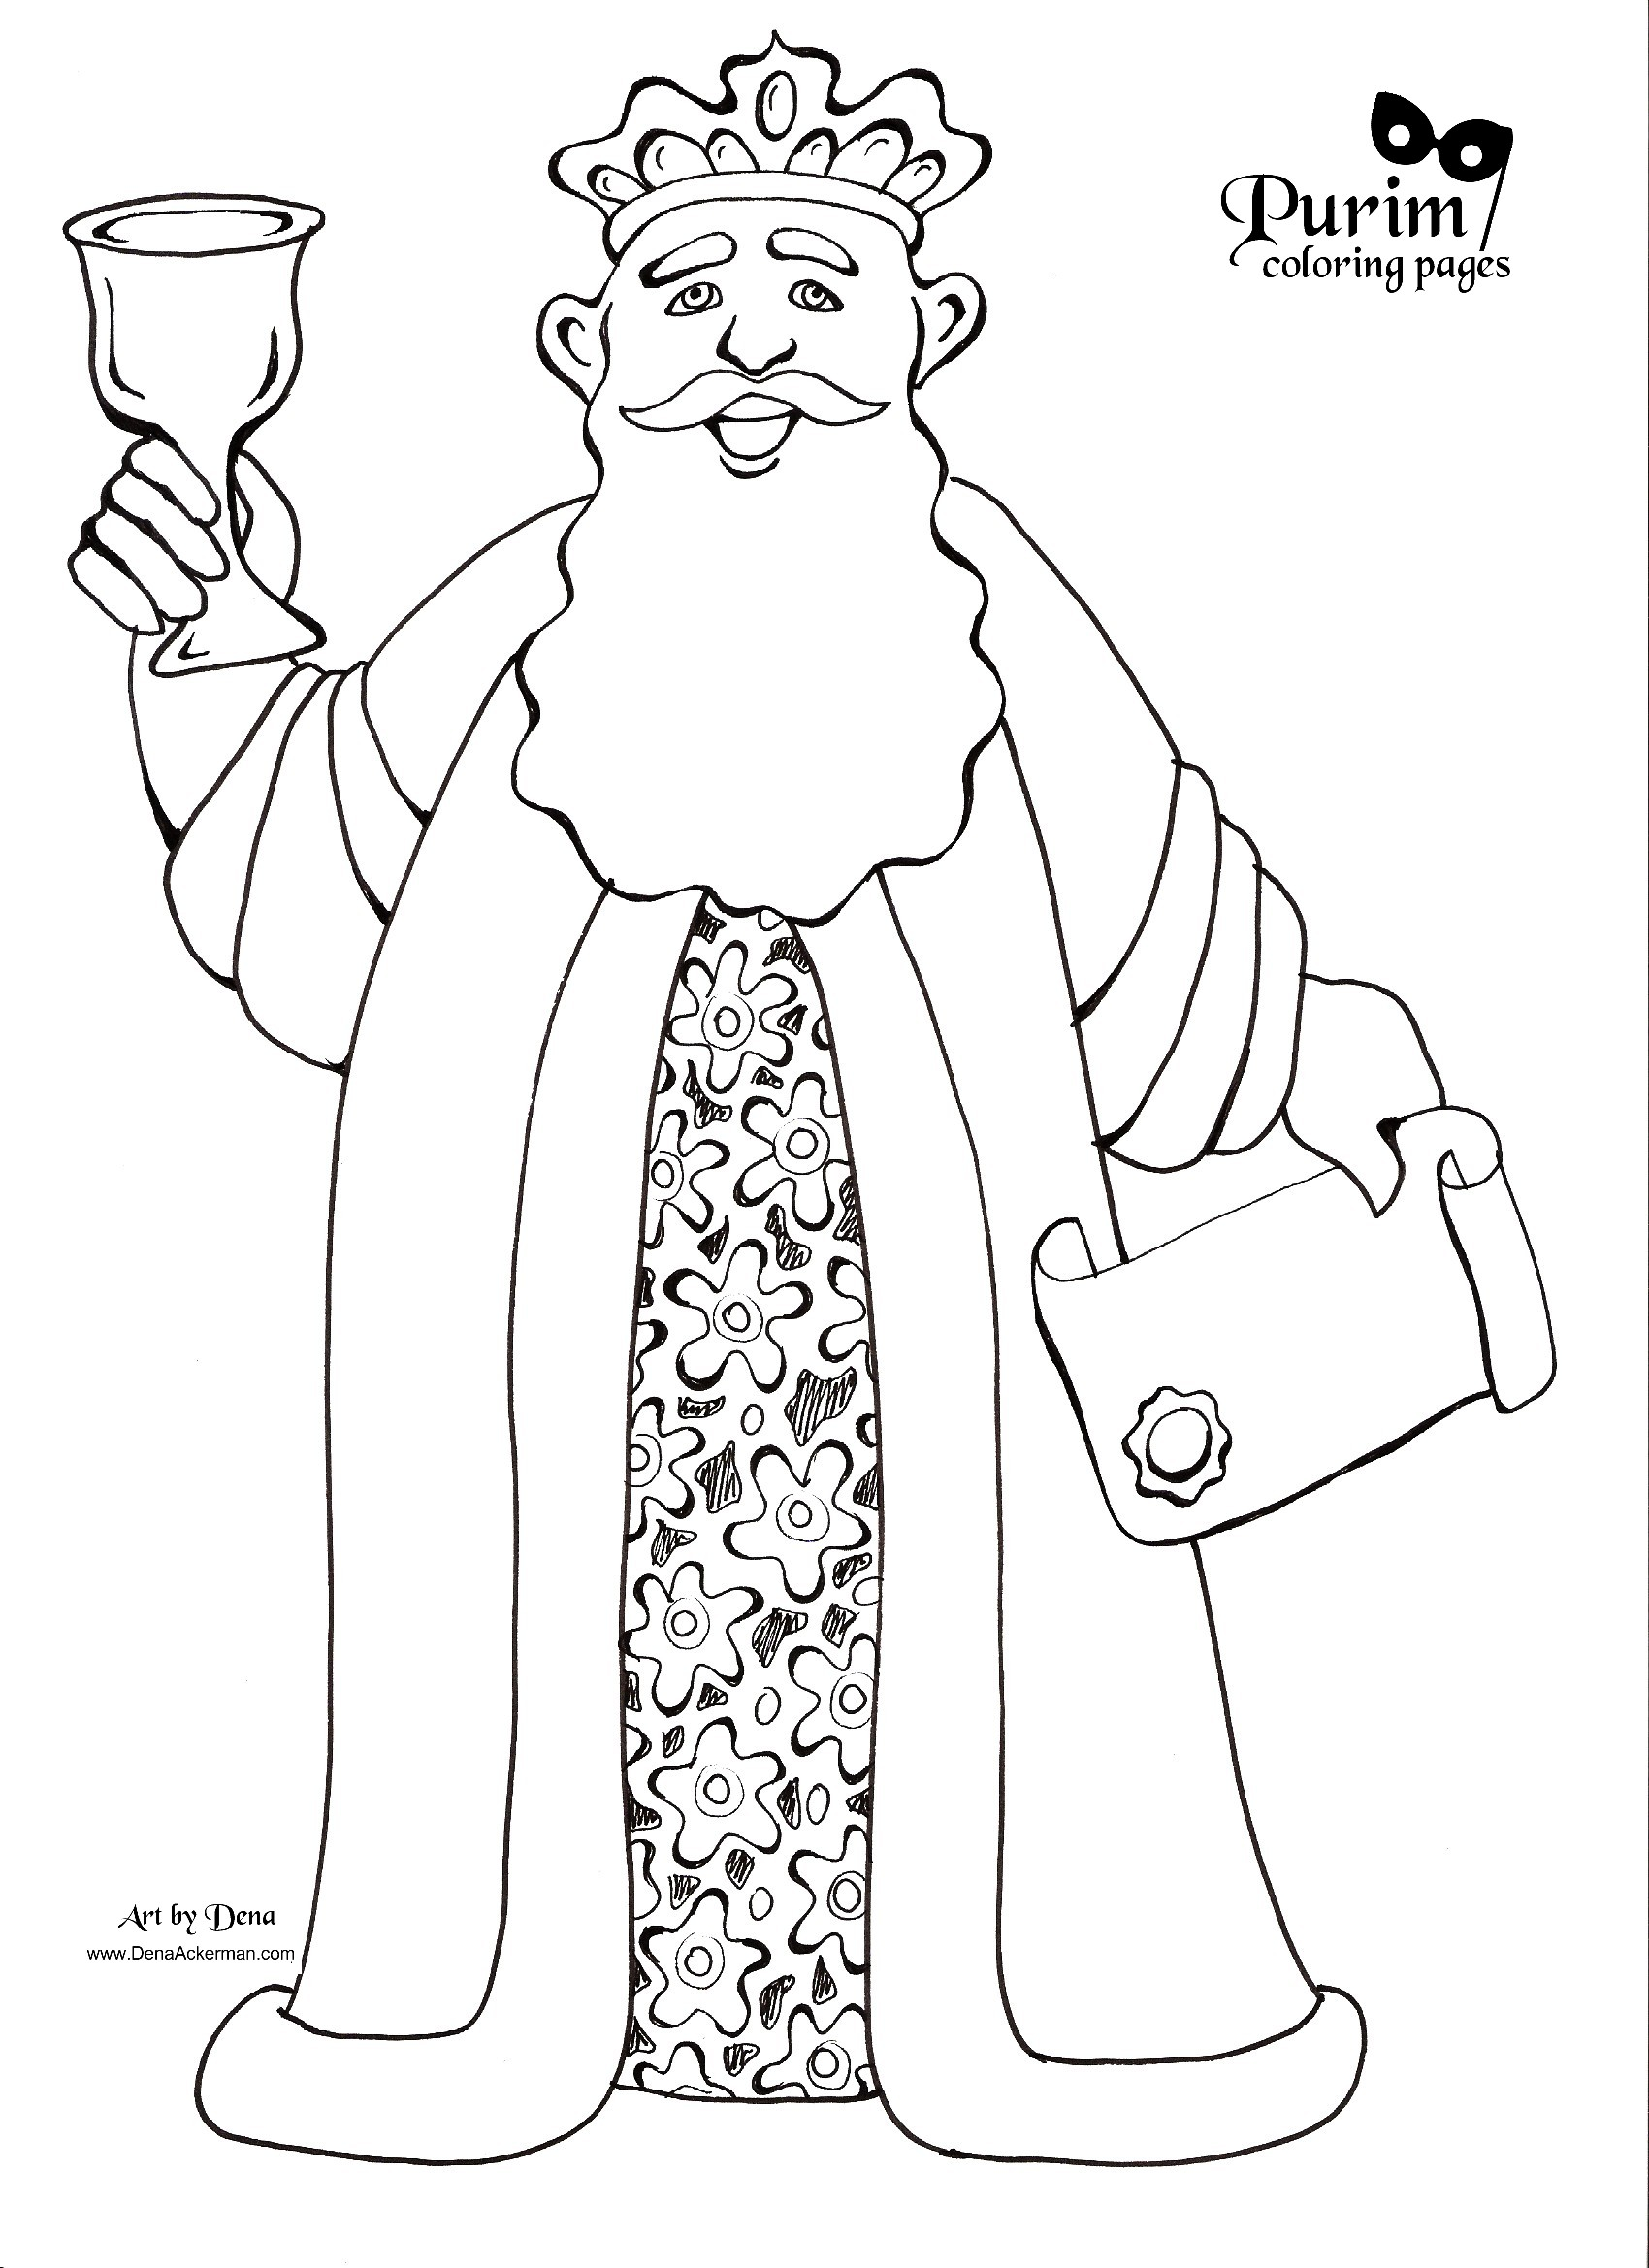 Purim coloring pages to download